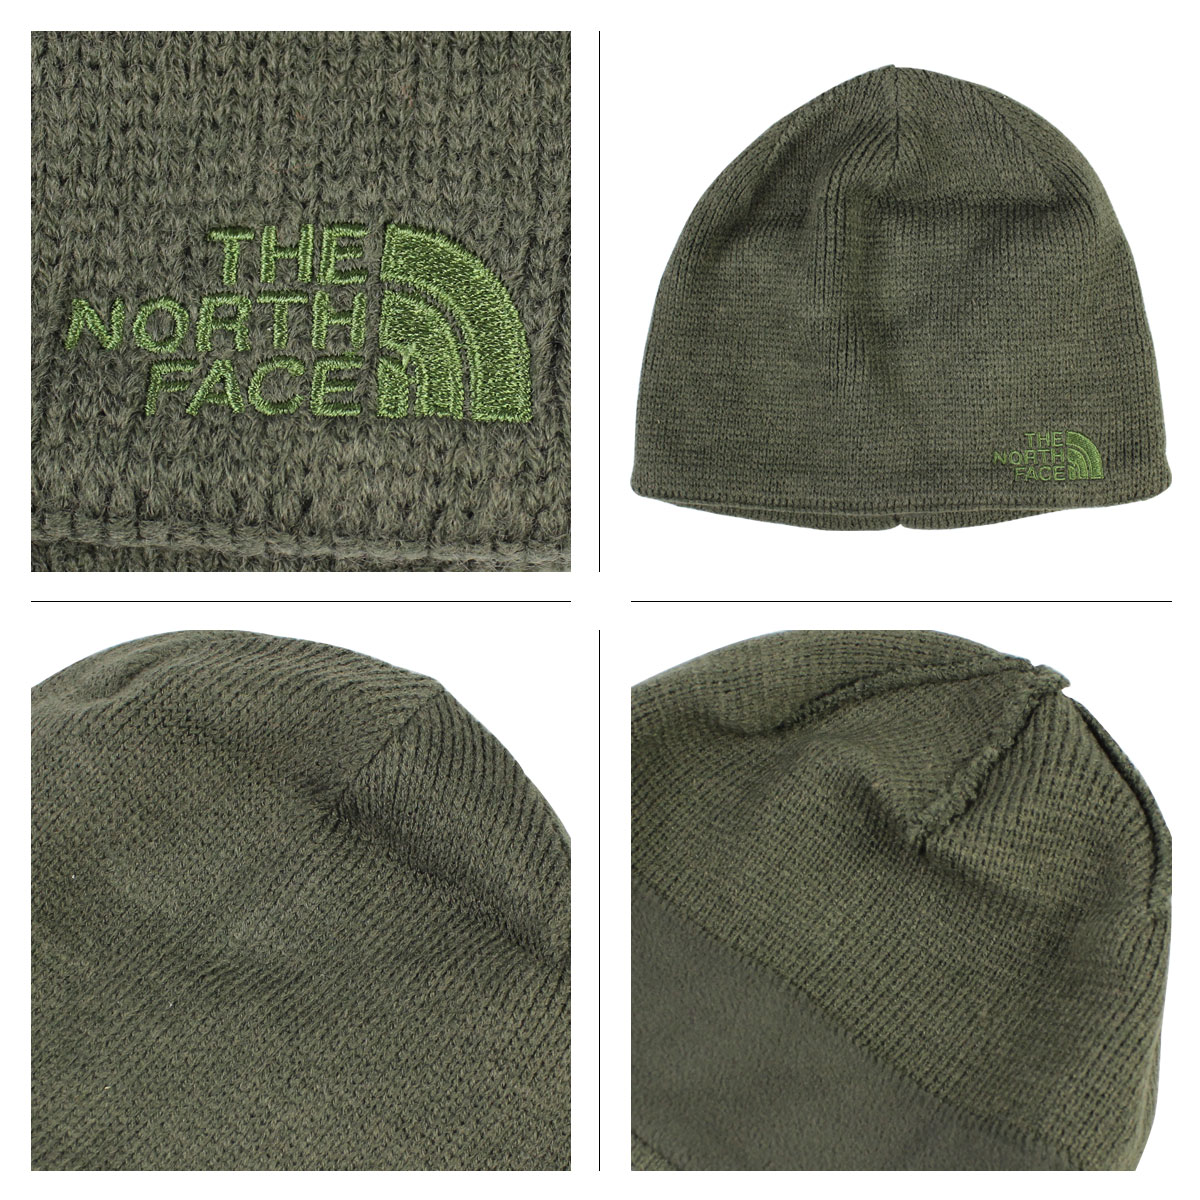 2ac98cd6287 «Soon» «10 7 days stock» north face THE NORTH FACE men s women s knit hat  Beanie knit Cap AHHZ 3 color BONES BEANIE  10 7 new in stock